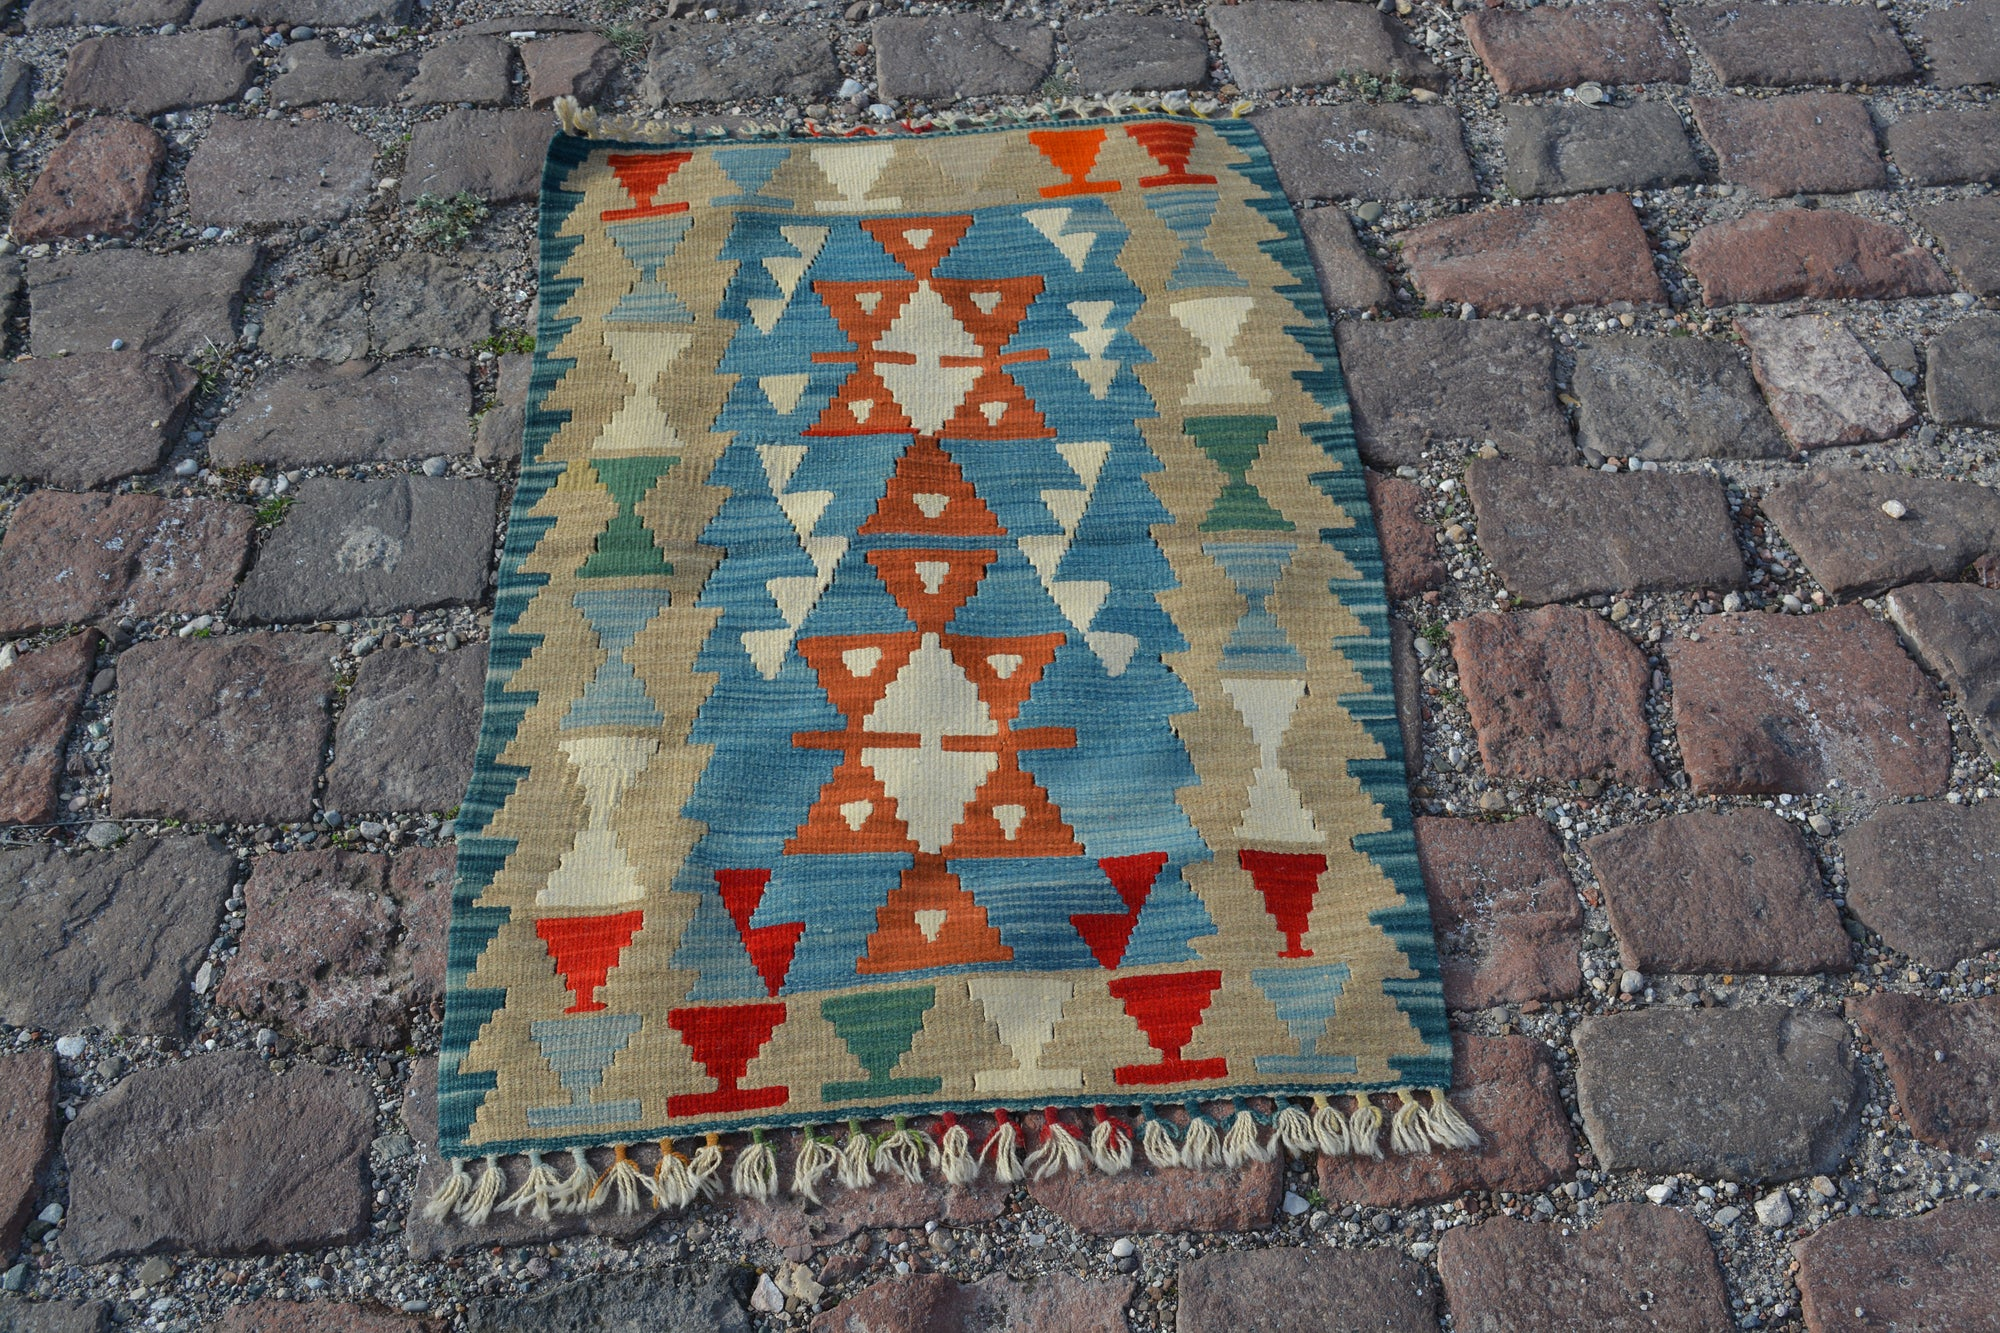 Bathroom Turkish Rugs, Oriental rug, Entrance rug, Oushak Rug, Vintage Rugs, Turkish carpet, Doormat rug, Over dyed rug, 2.4x3.6  Ft AG579